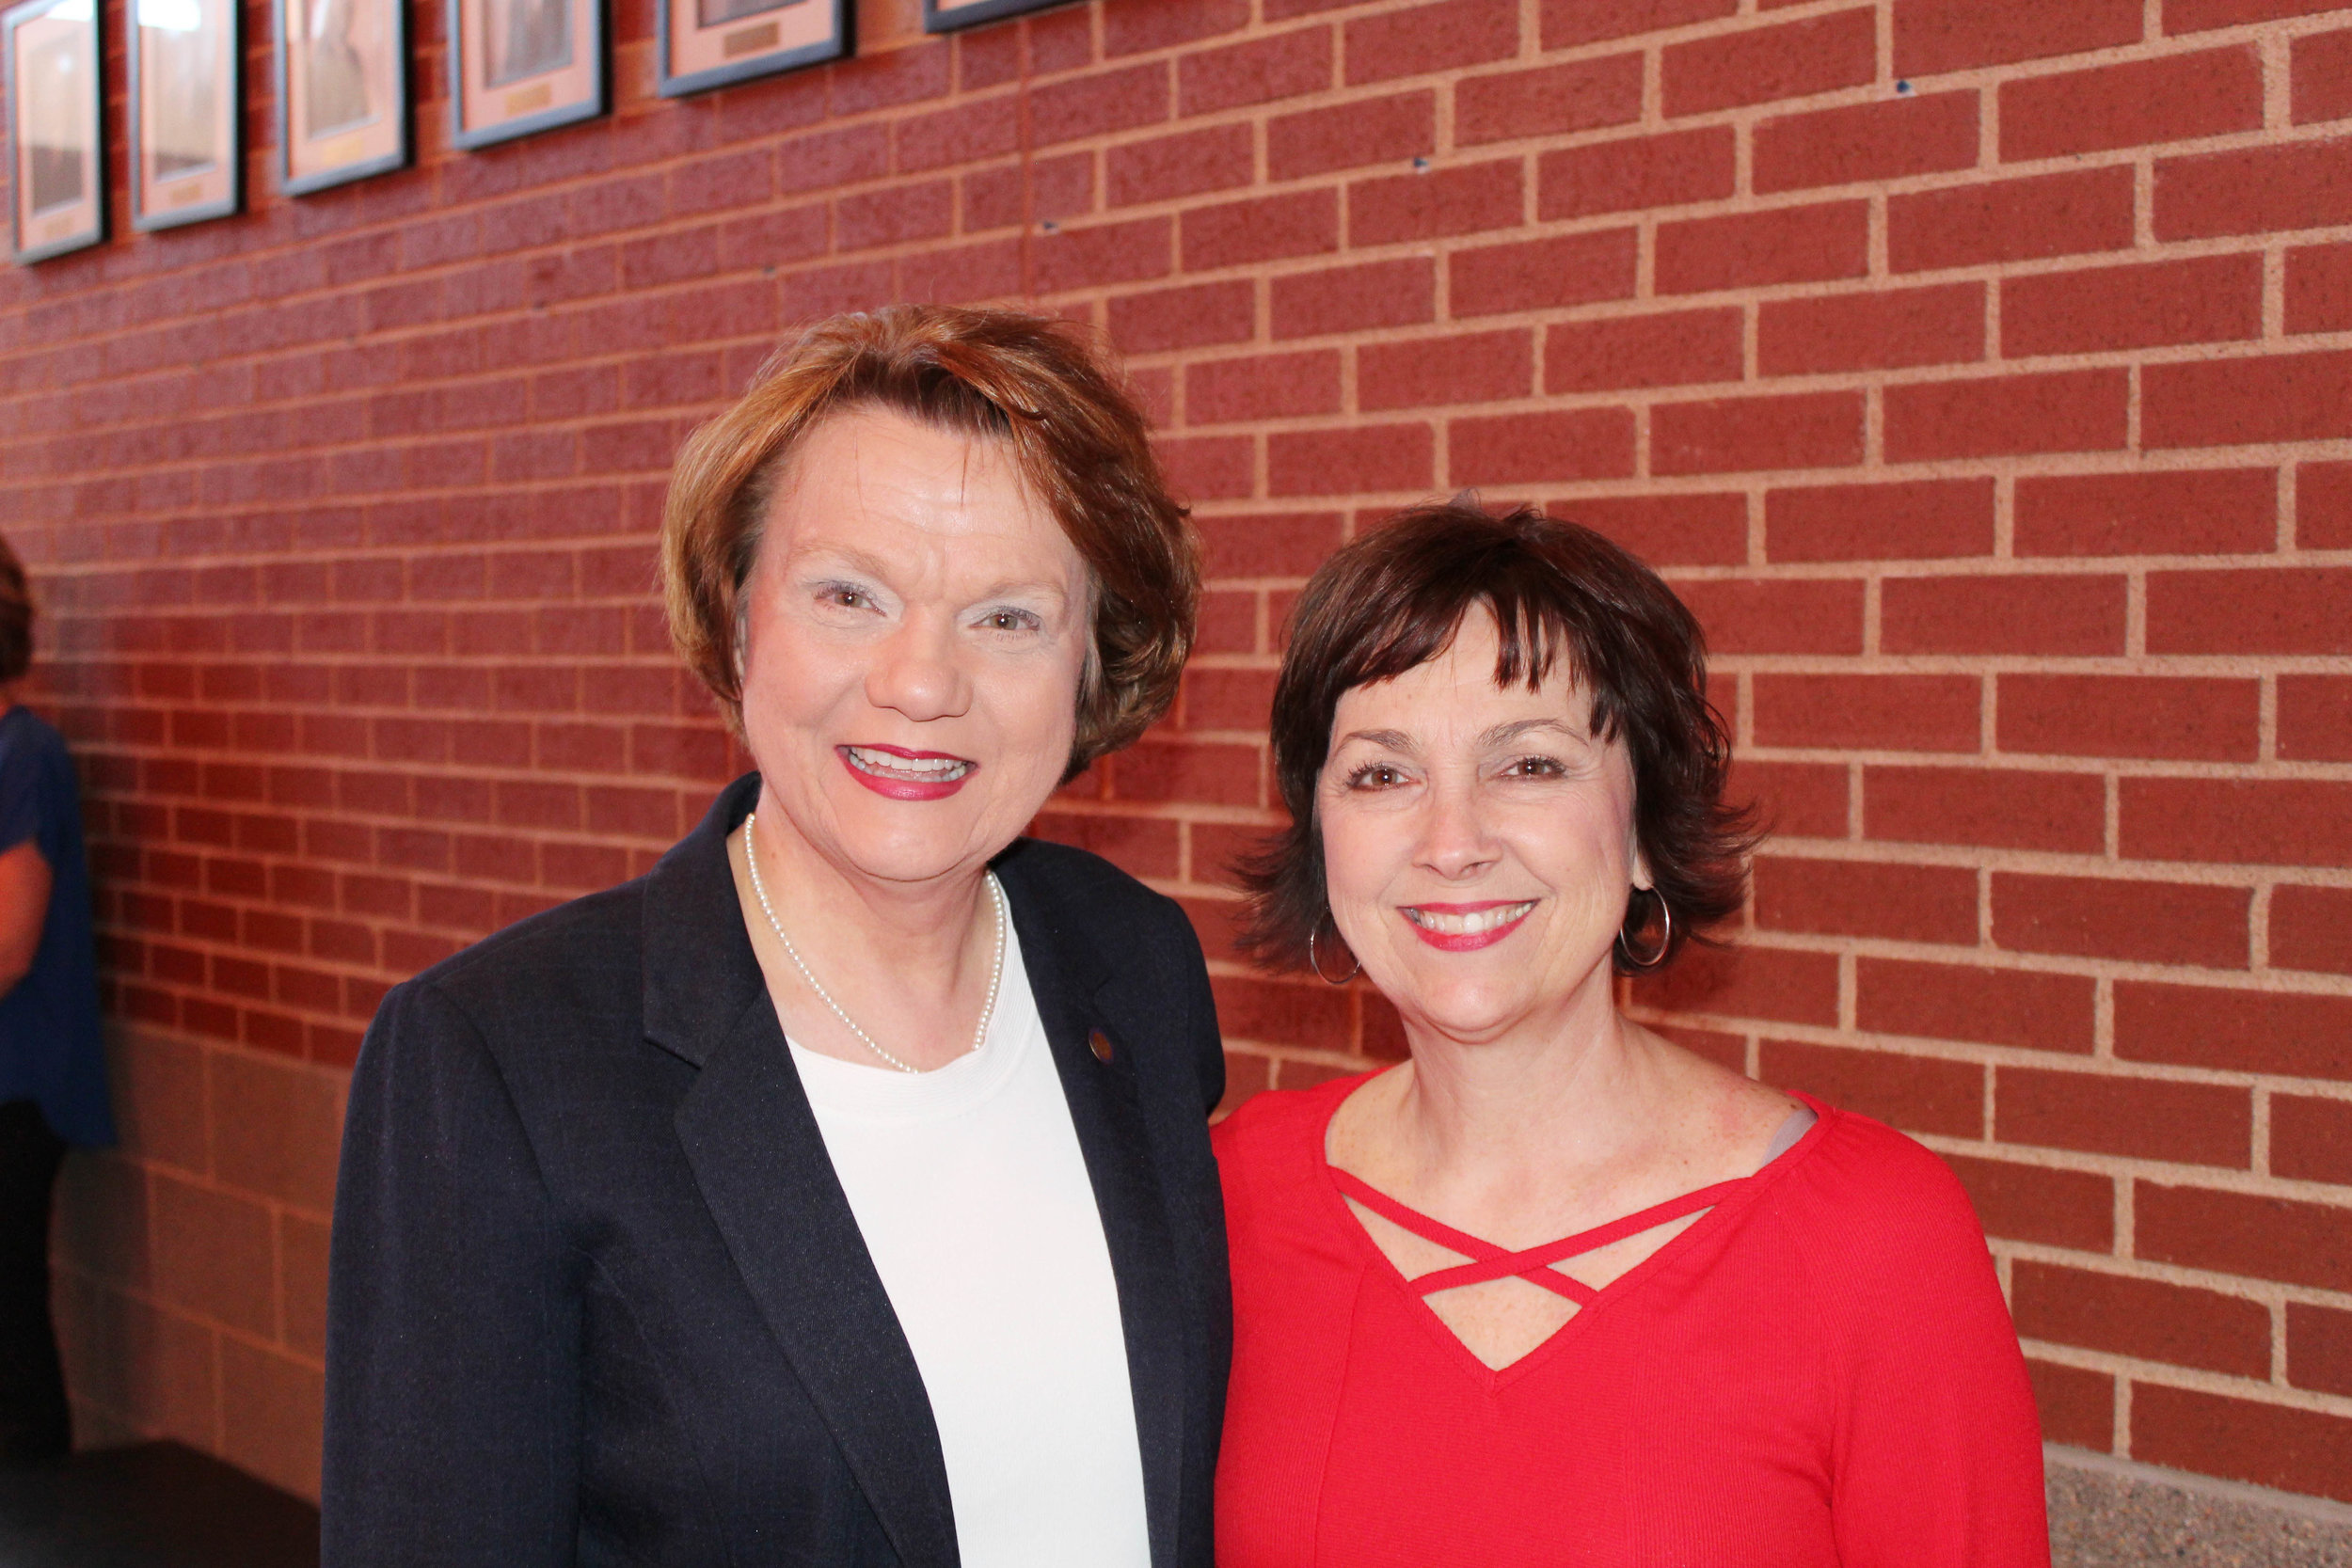 Rep. Carol Dalby and Shelby Brown